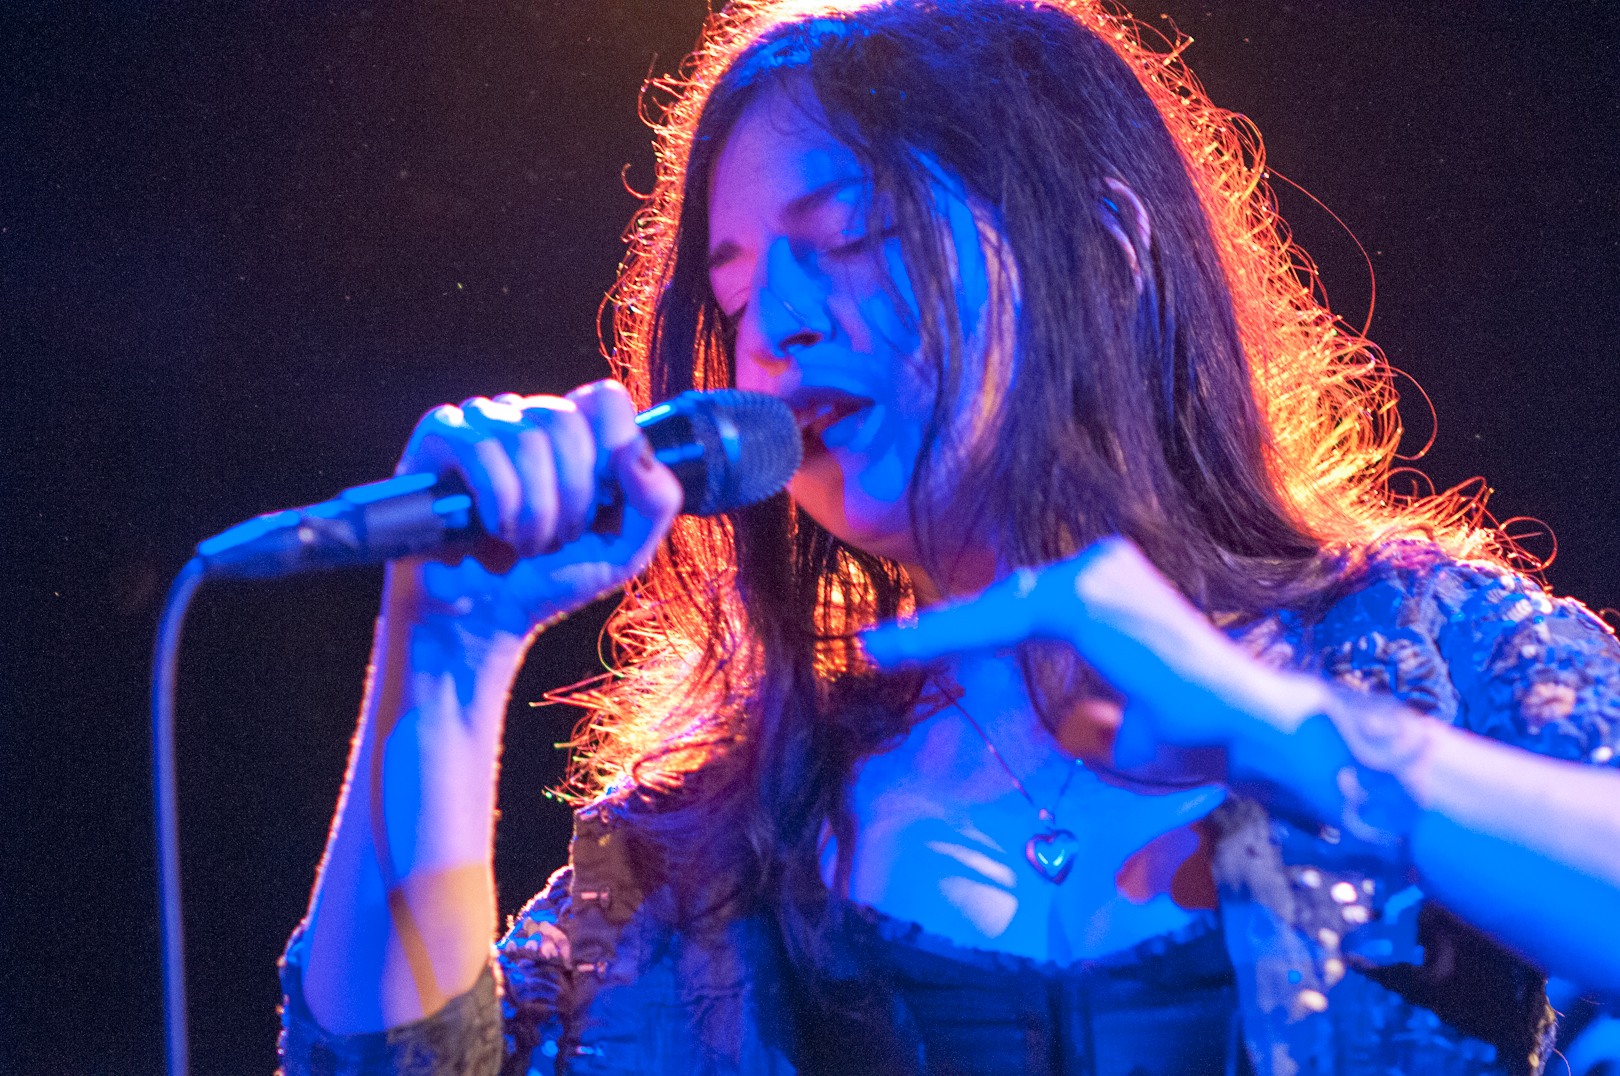 Jennifer Charles with Elysian Fields at the Undead Music Festival